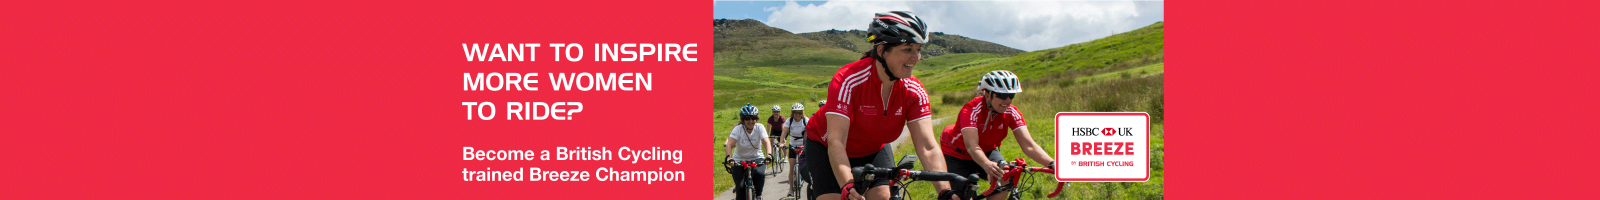 Become a Breeze Champion with British Cycling